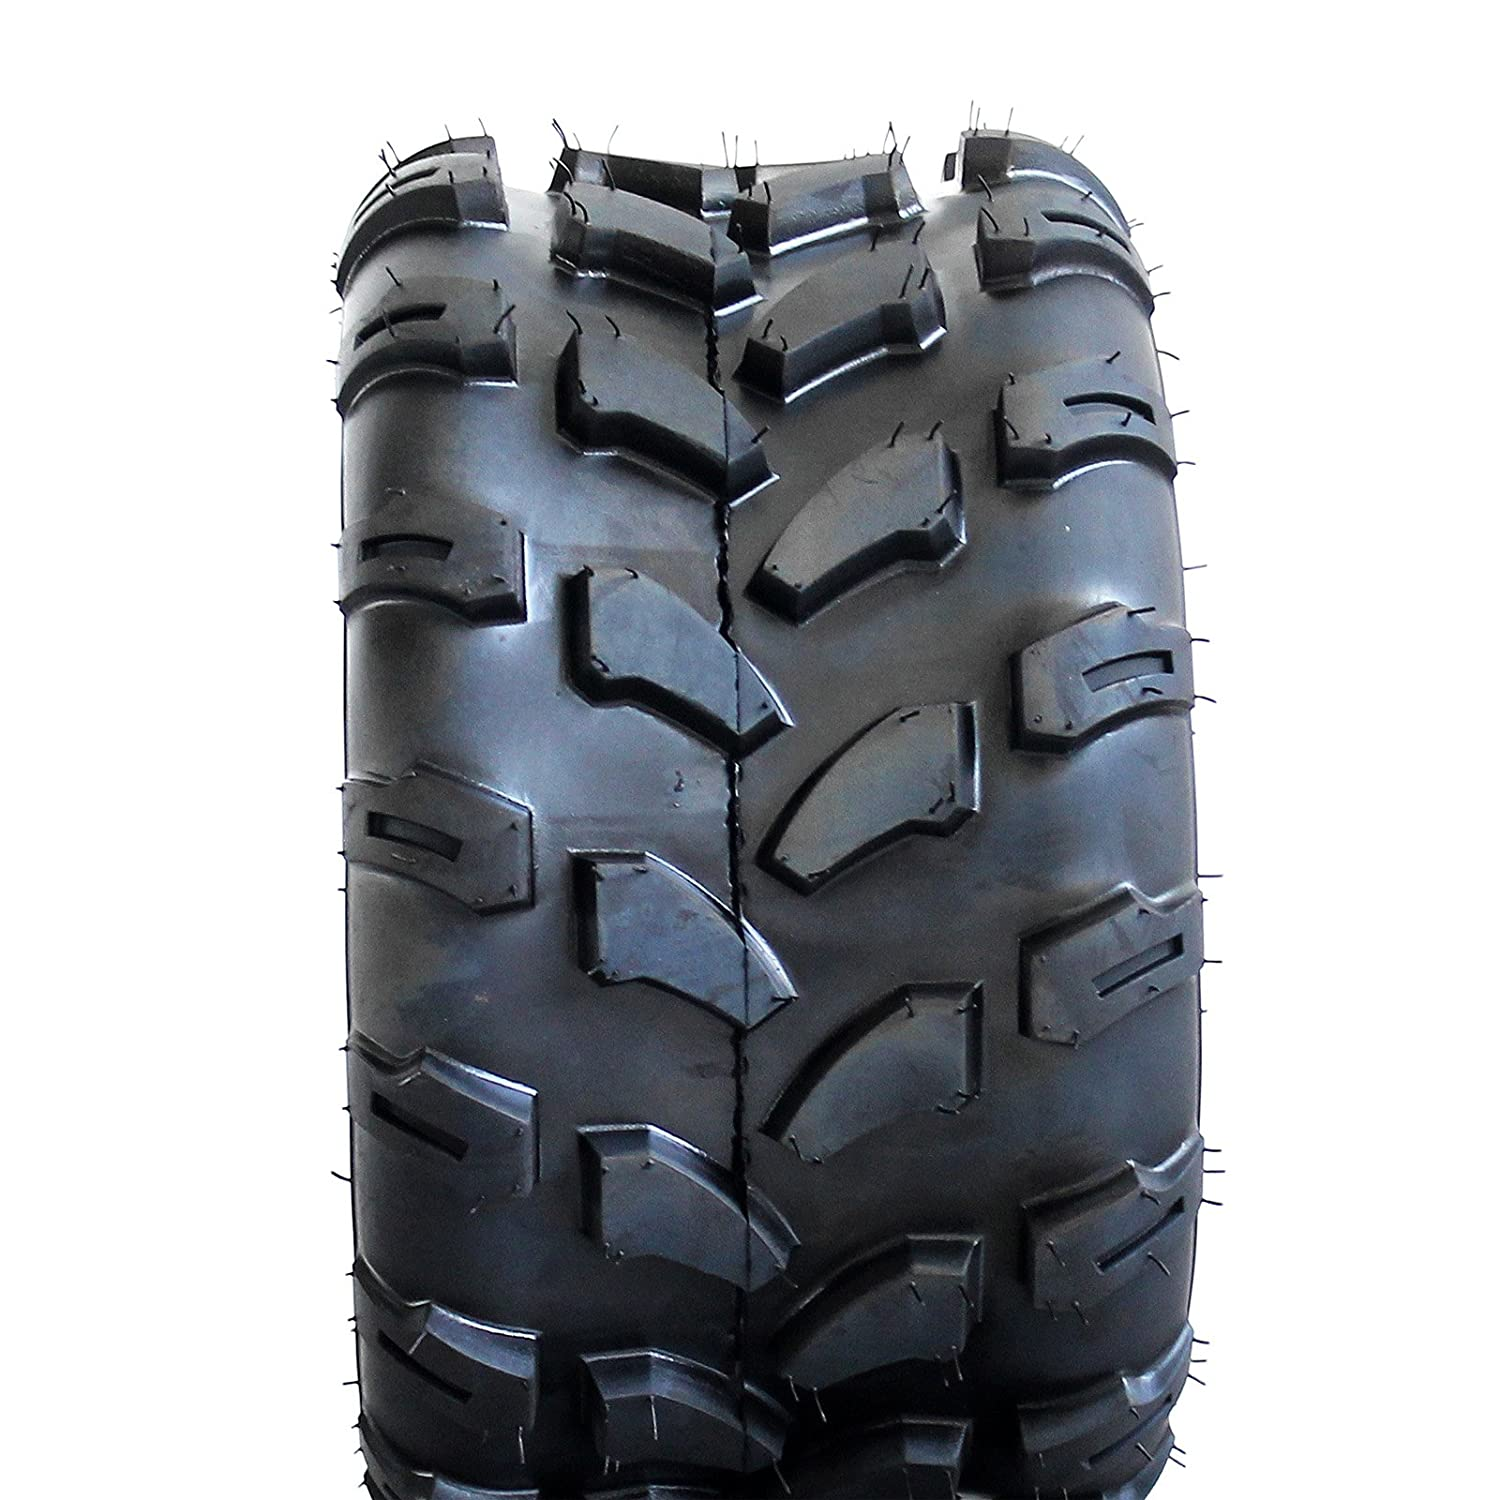 AR DONGFANG ATV Tires 19x7-8 Quad UTV Go Kart Tires ATV Tire